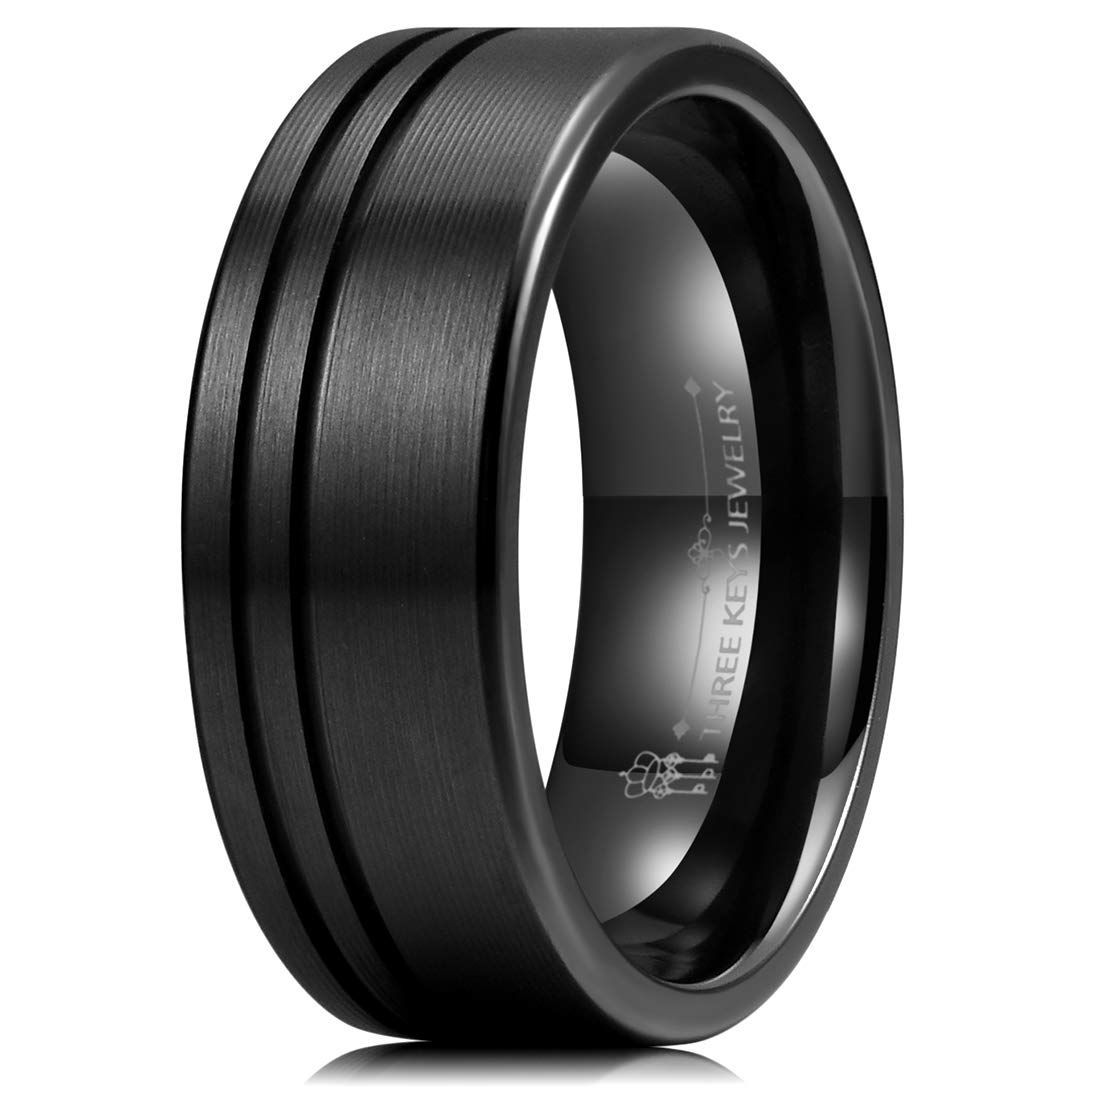 Three Keys Jewelry Mens 8mm Black Zirconium Wedding Band Textured Brushed with 2 Offset Slices Classic Engagement Ring Size 7.5